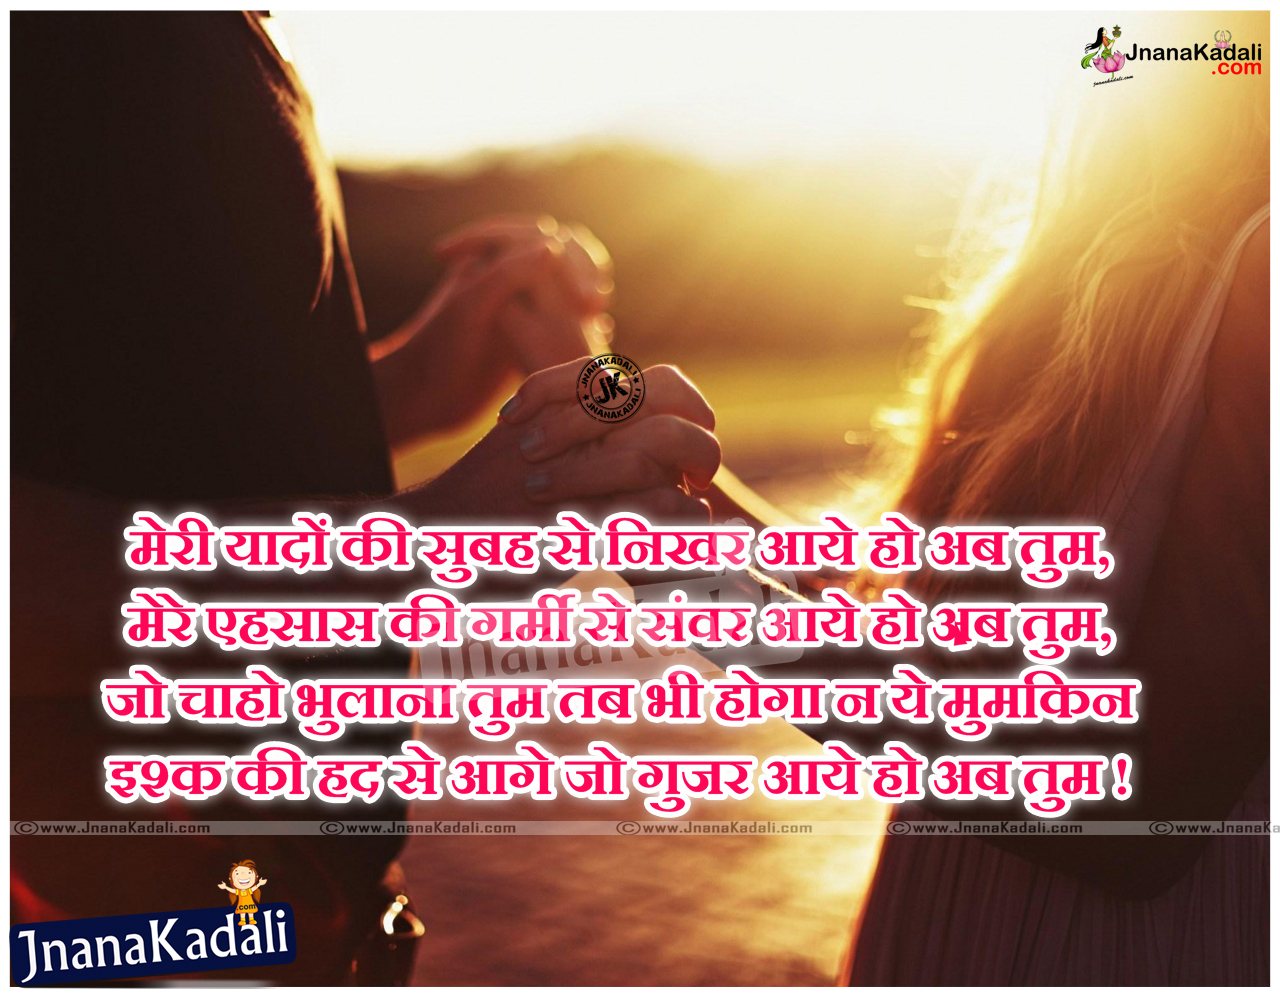 Pictures Of Love Quotes And Sayings For Him From The Heart In Hindi